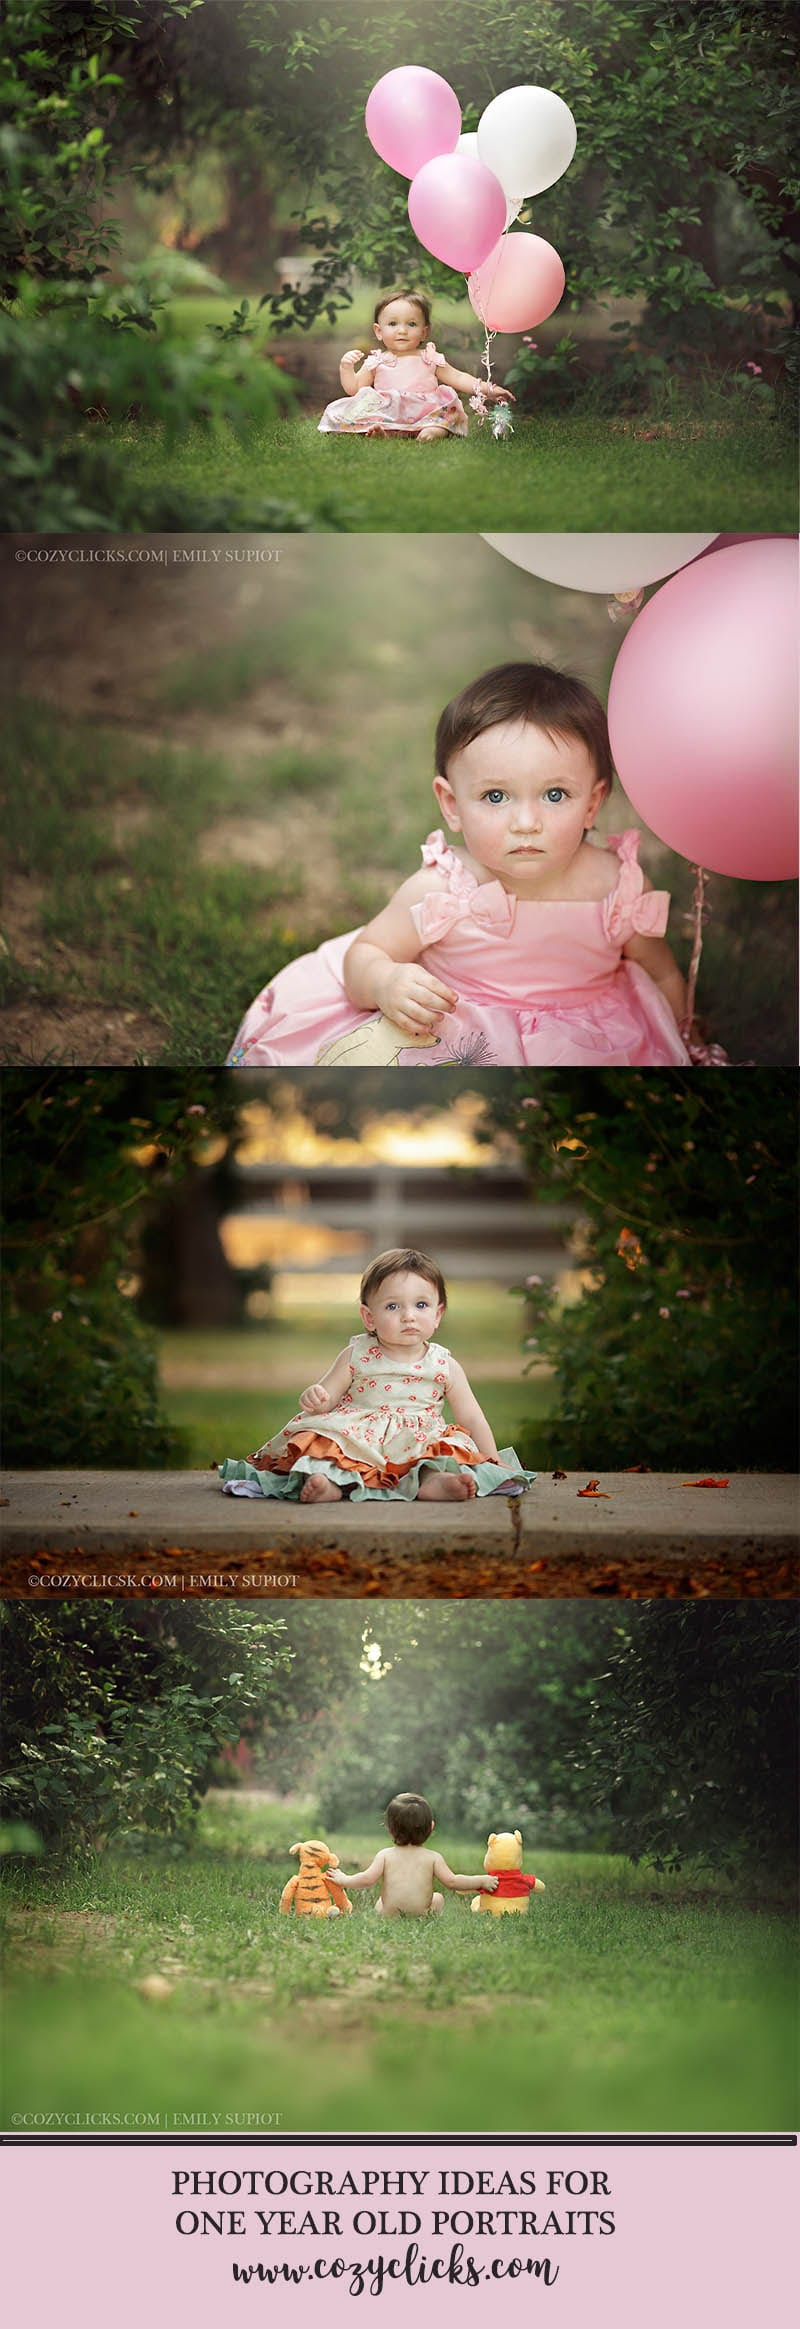 Photography Ideas For One Year Old Portraits Cozy Clicks